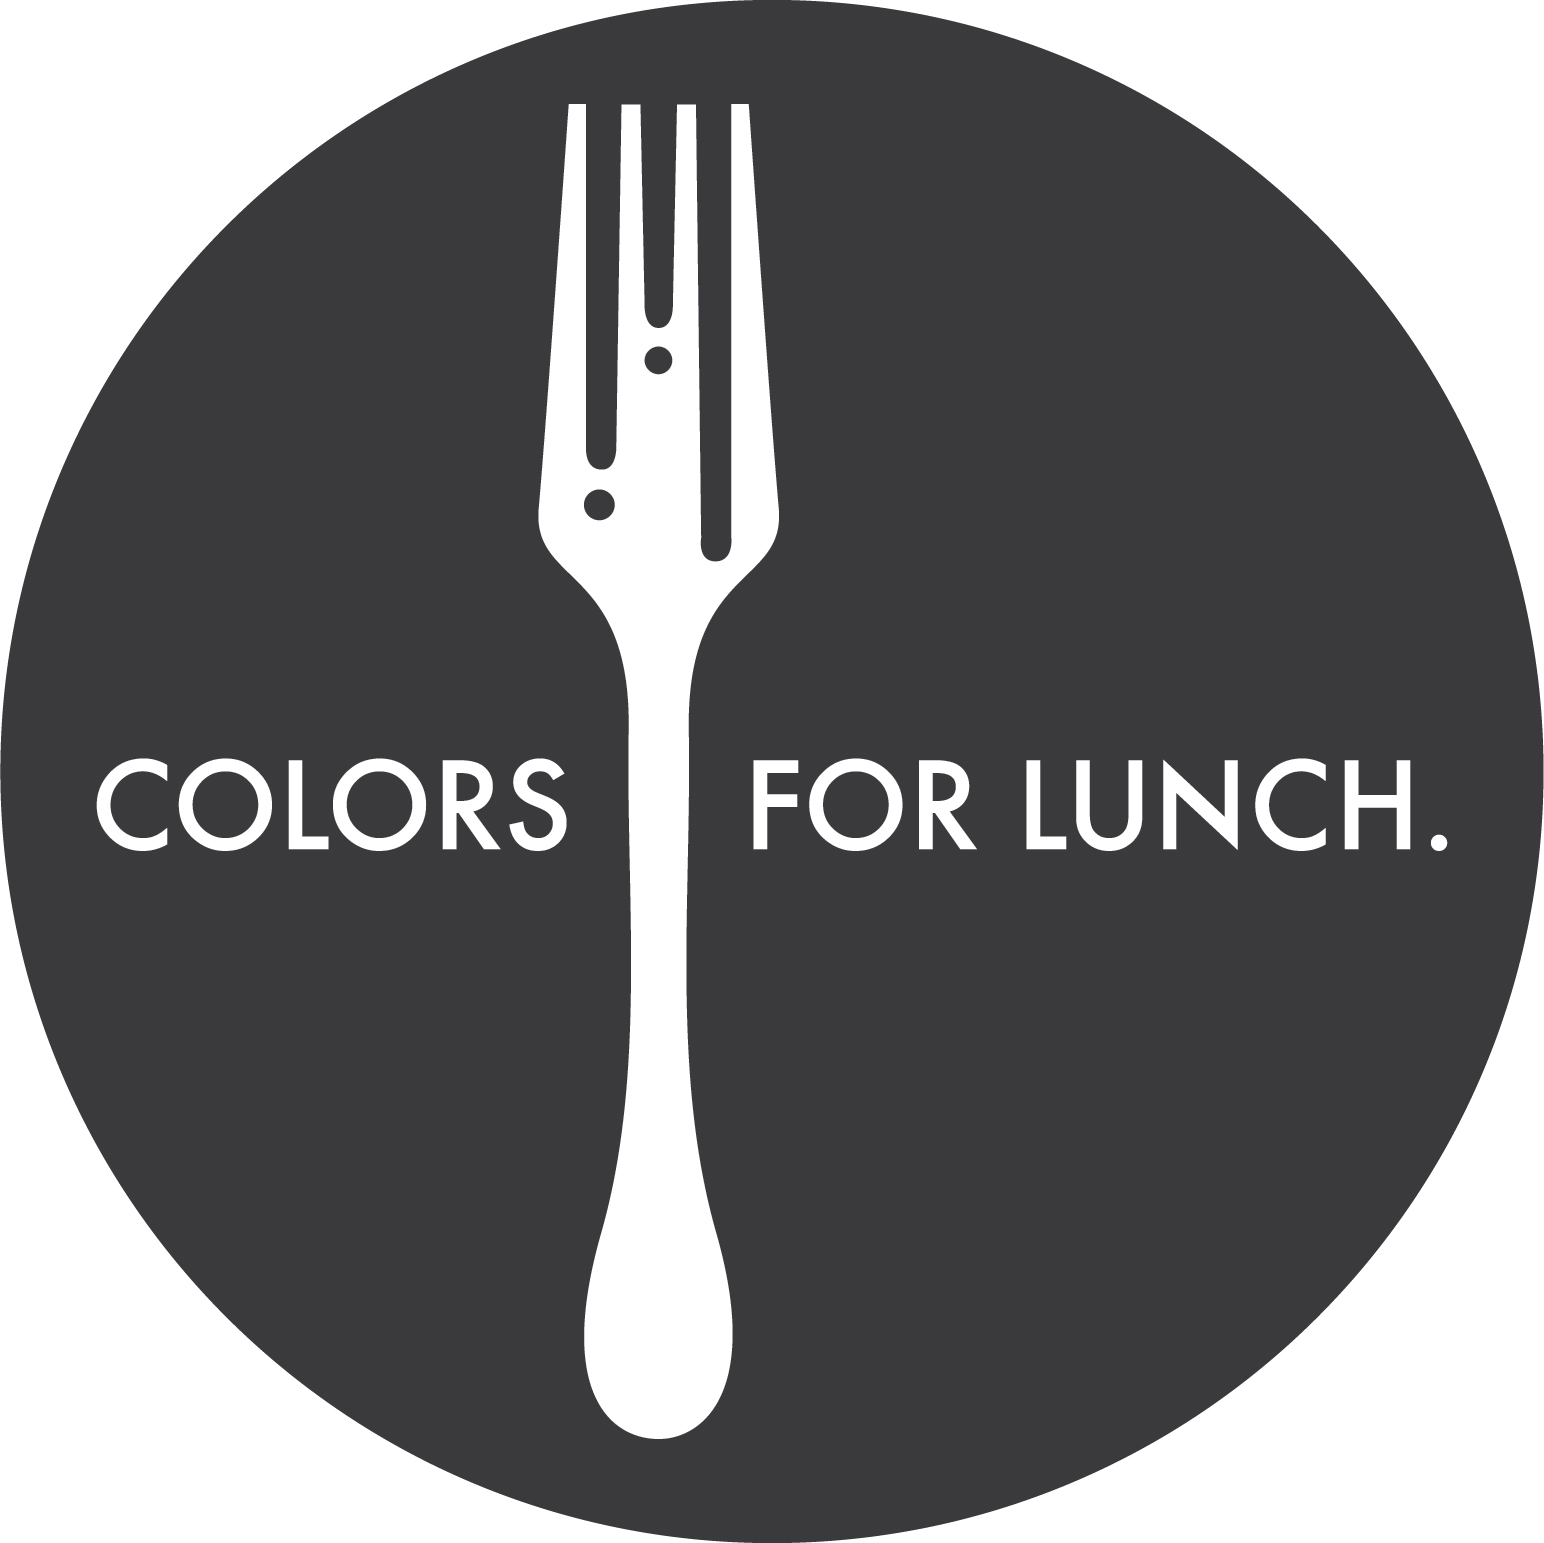 Colors for Lunch